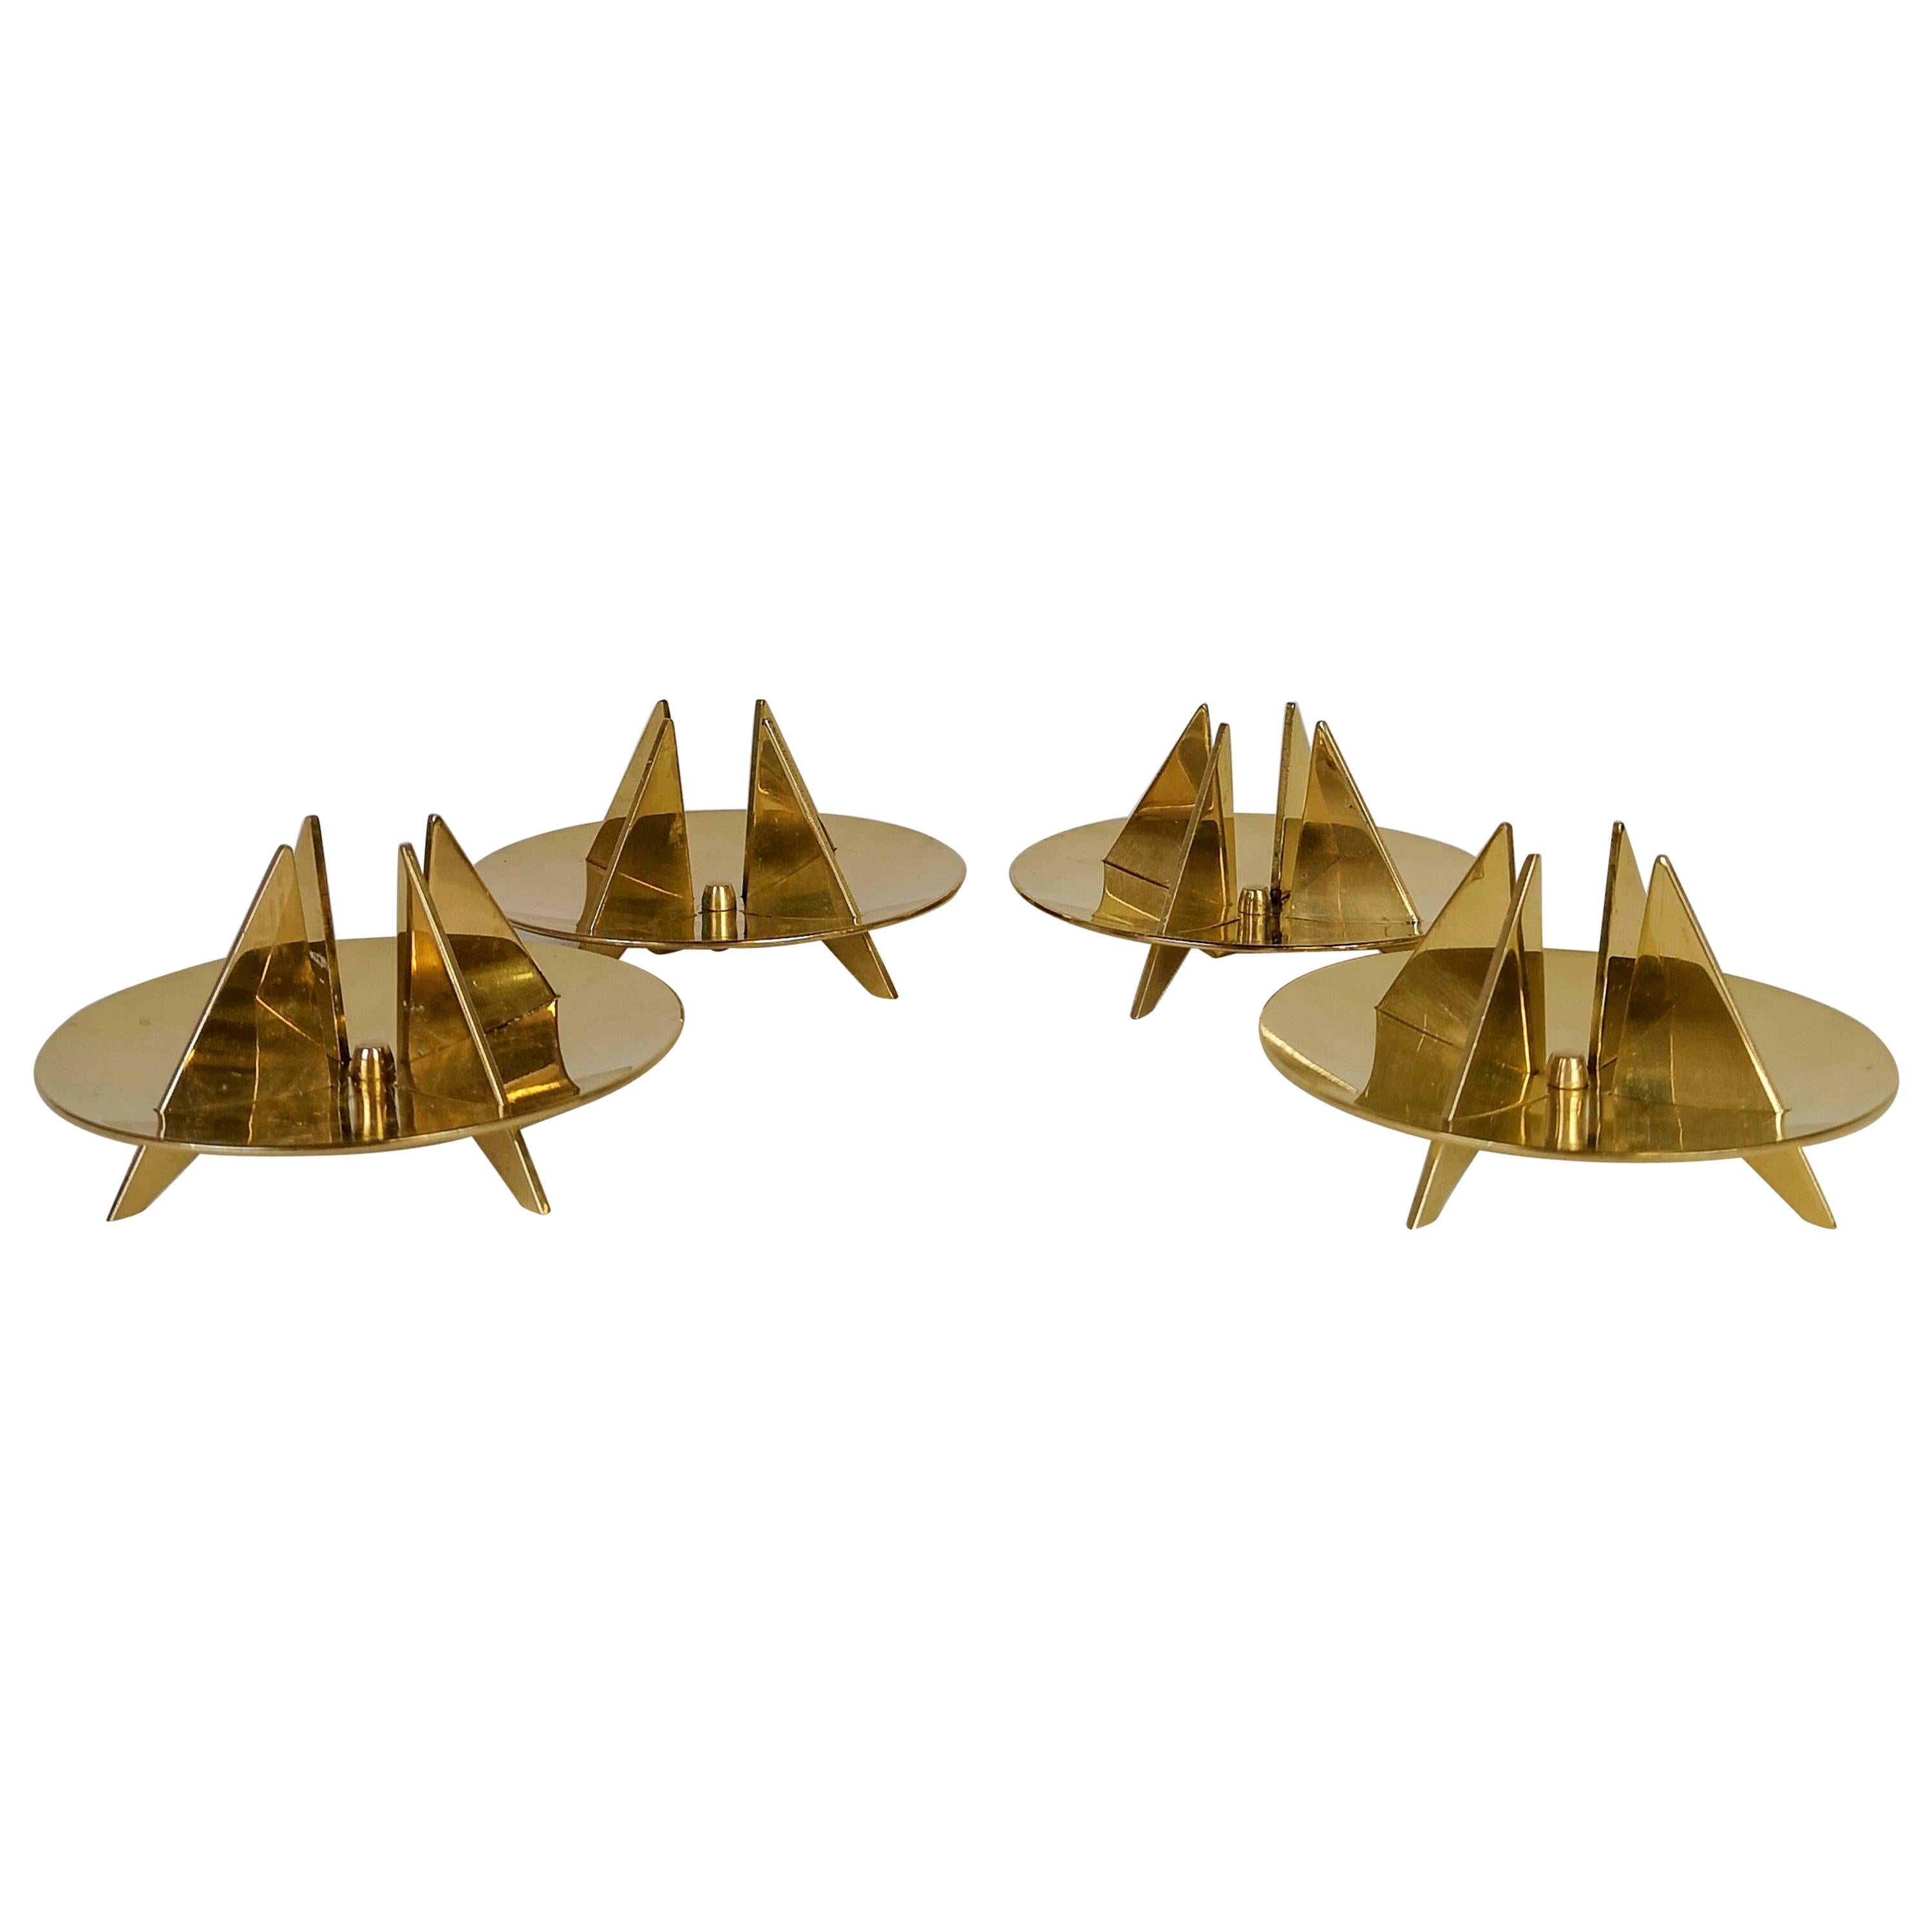 Set of 4 Brass Candleholders by Pierre Forsell for Skultuna, Sweden, 1960s